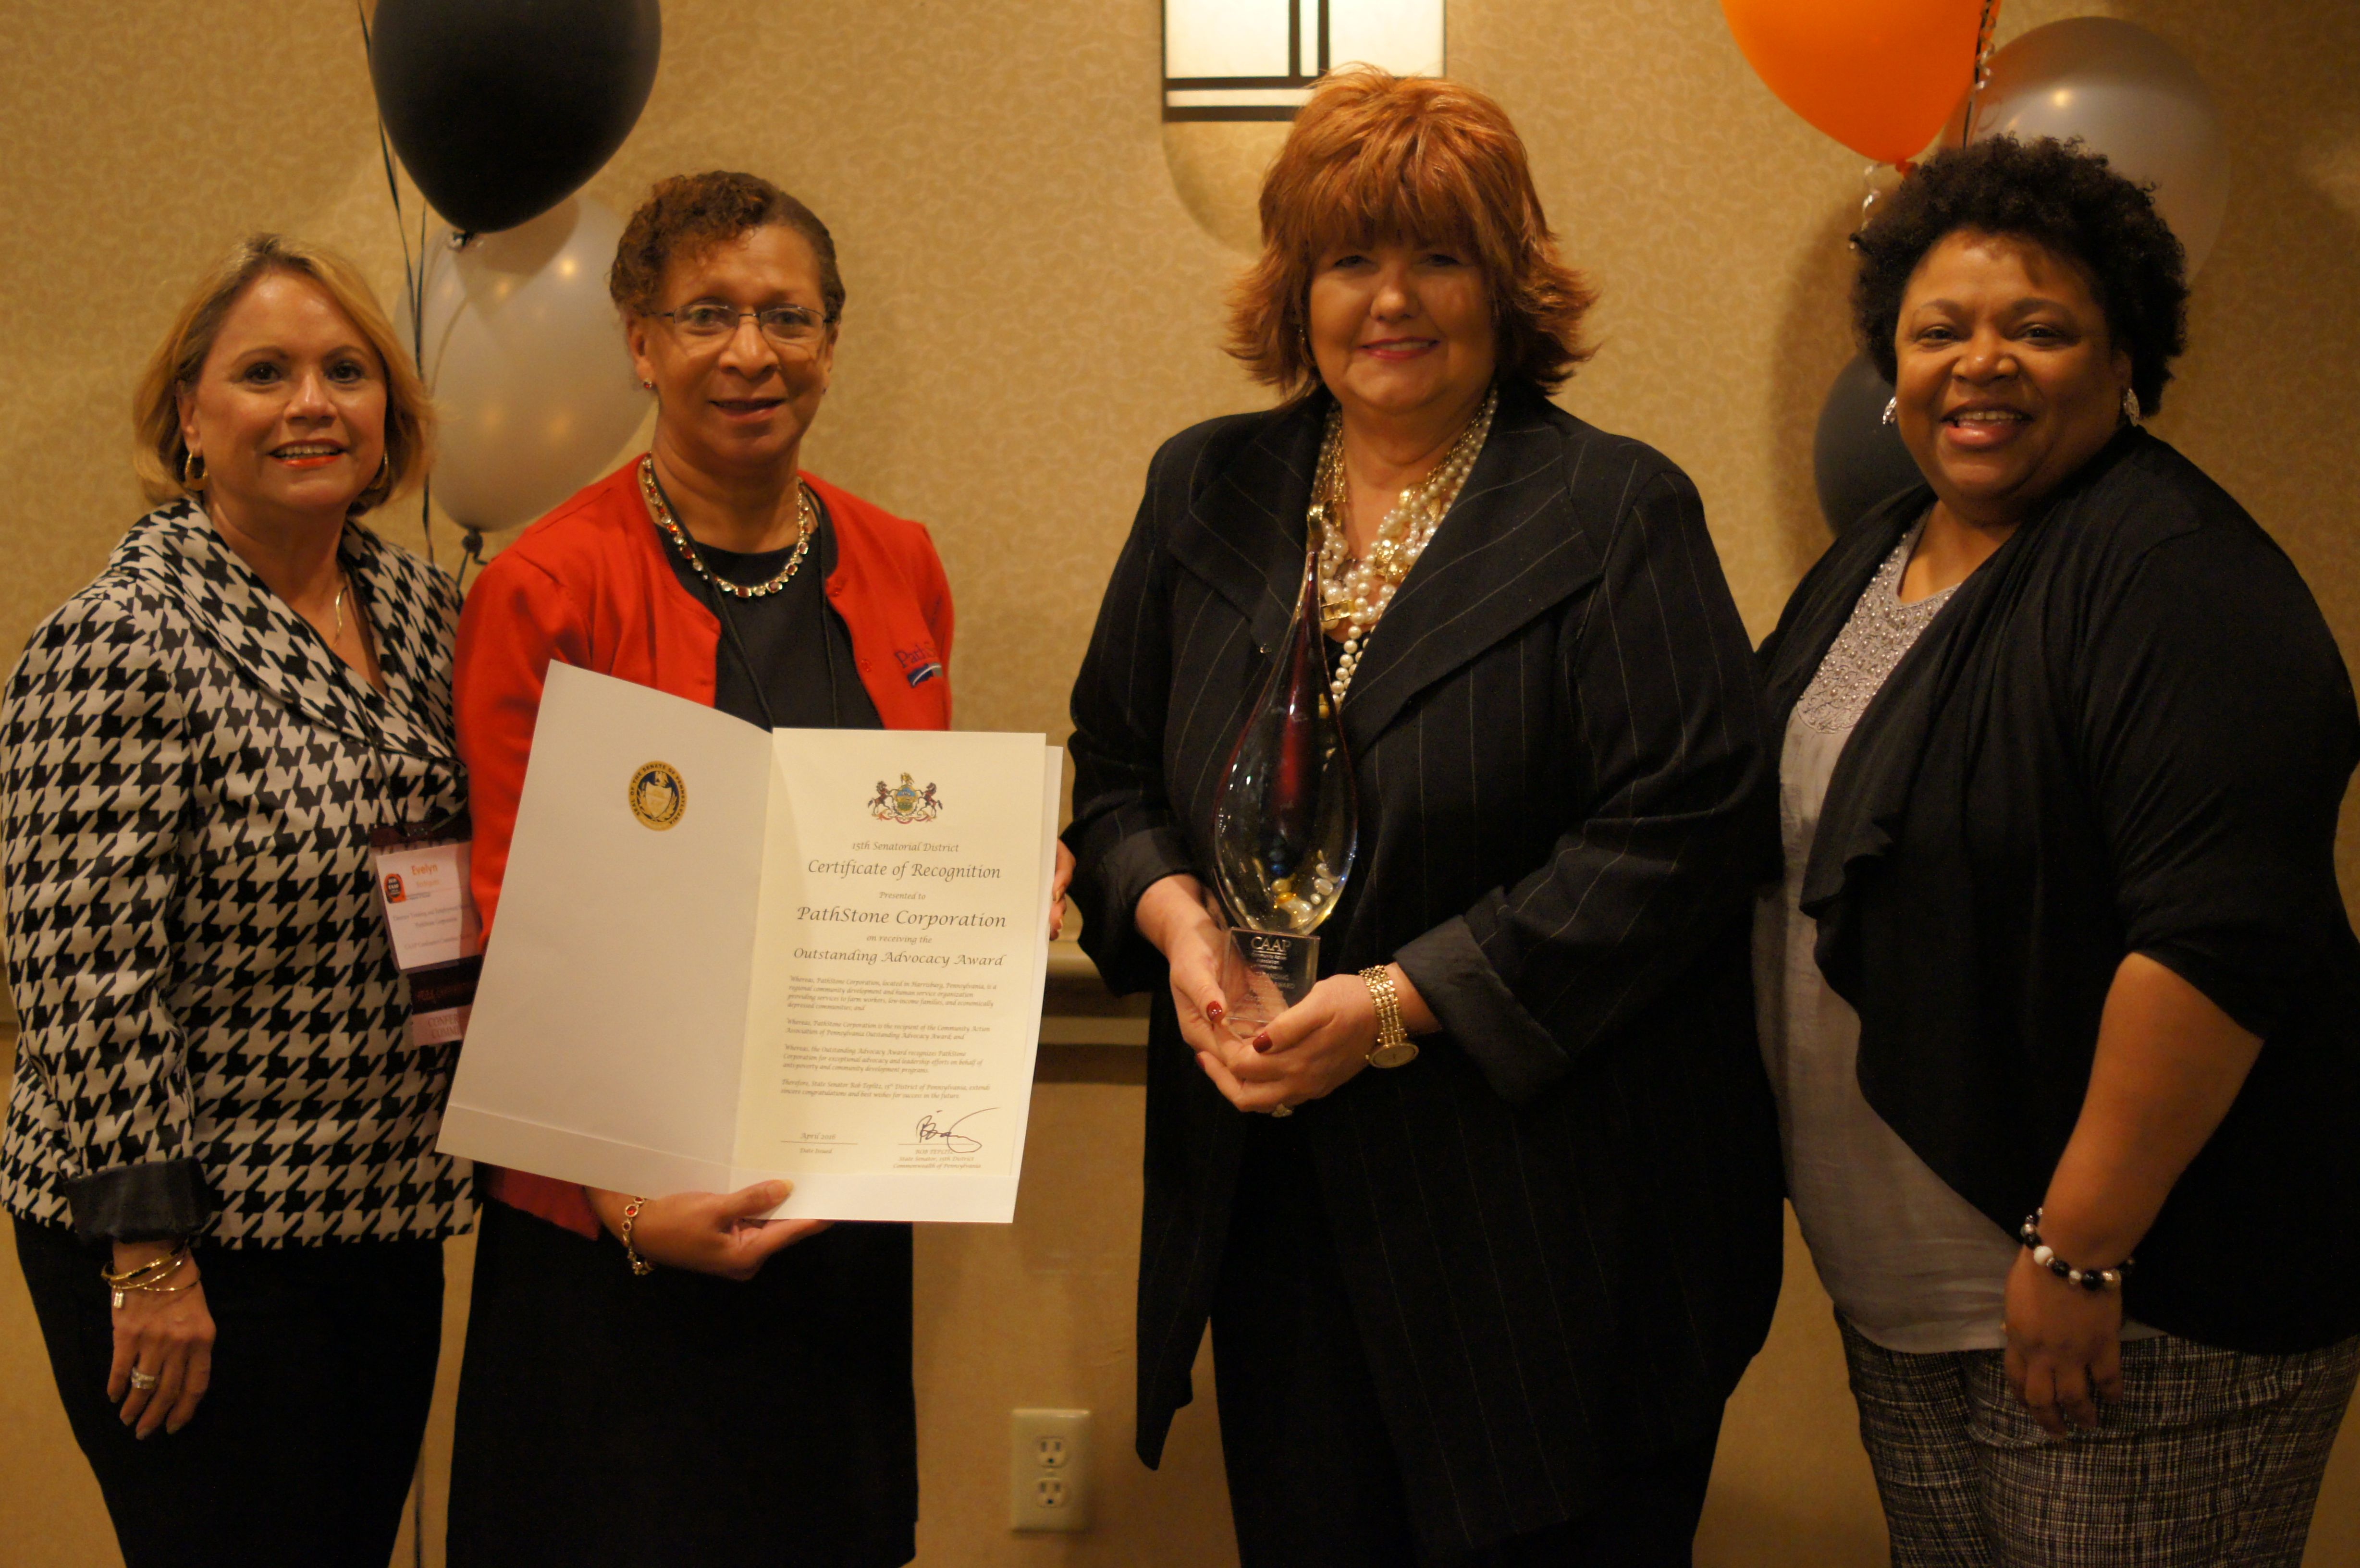 Outstanding Advocacy Award - PathStone